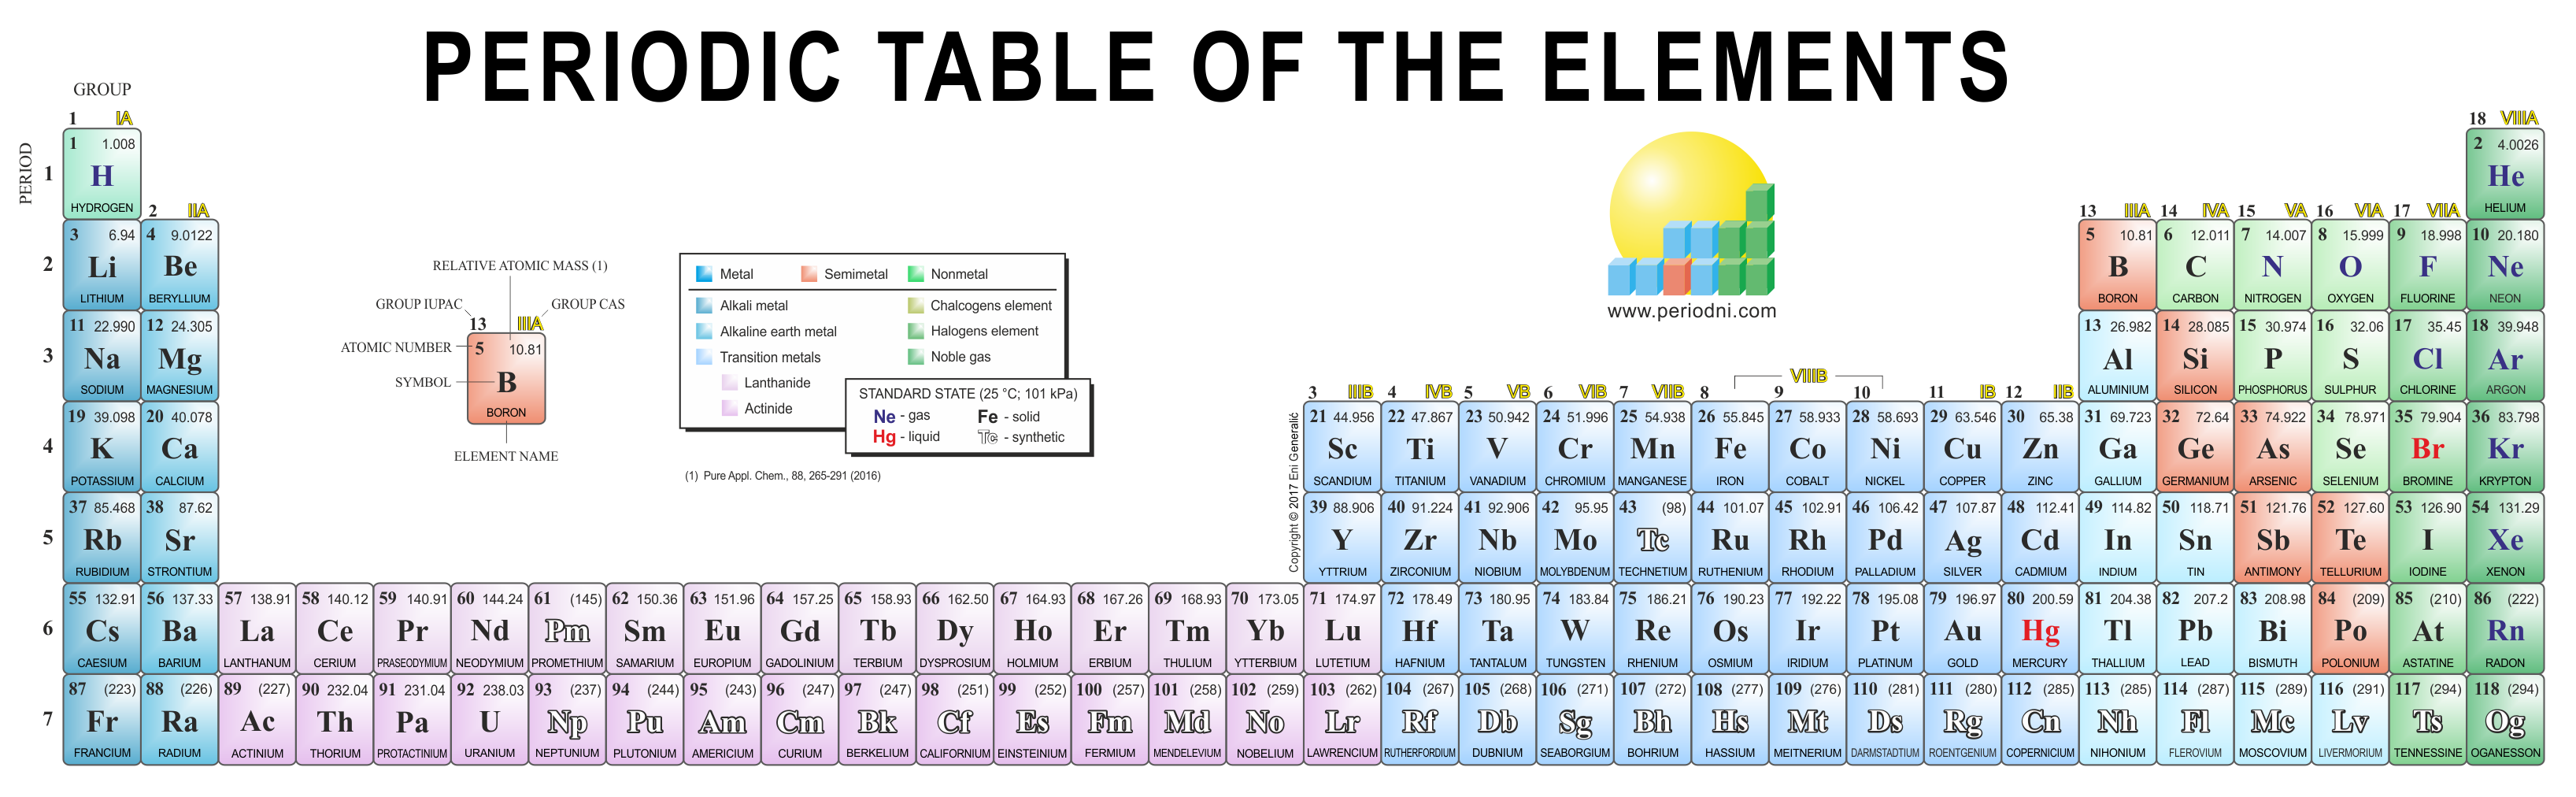 Chemistry images gallery 32 column periodic table urtaz Choice Image